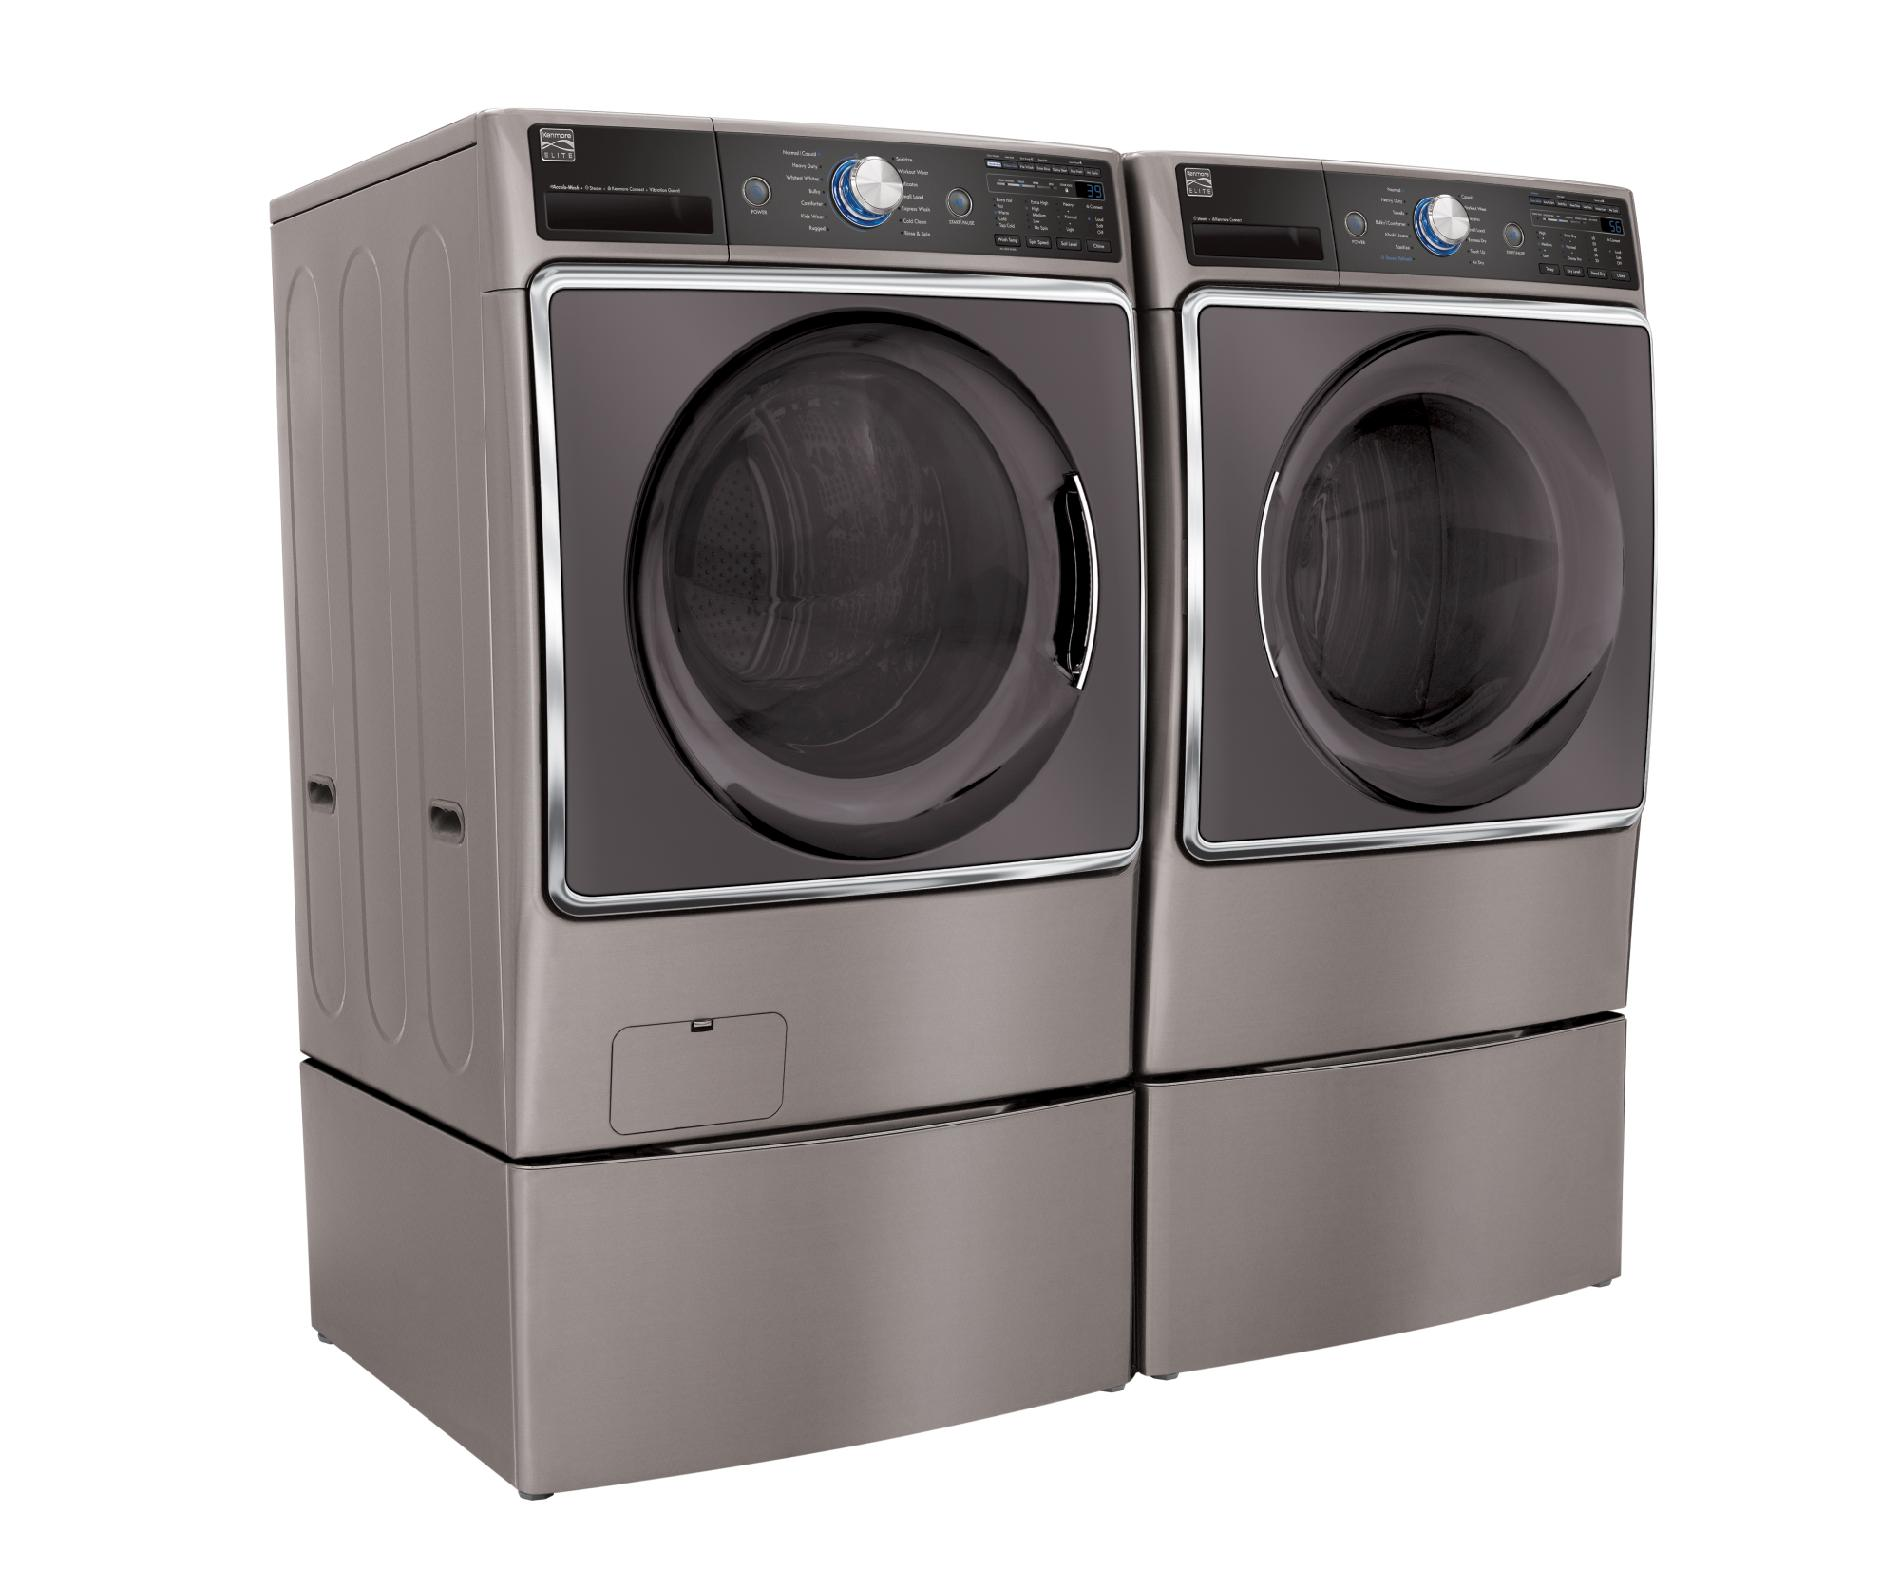 Kenmore Elite 41073 5.2 cu. ft. Front-Load Washer—Metallic Silver